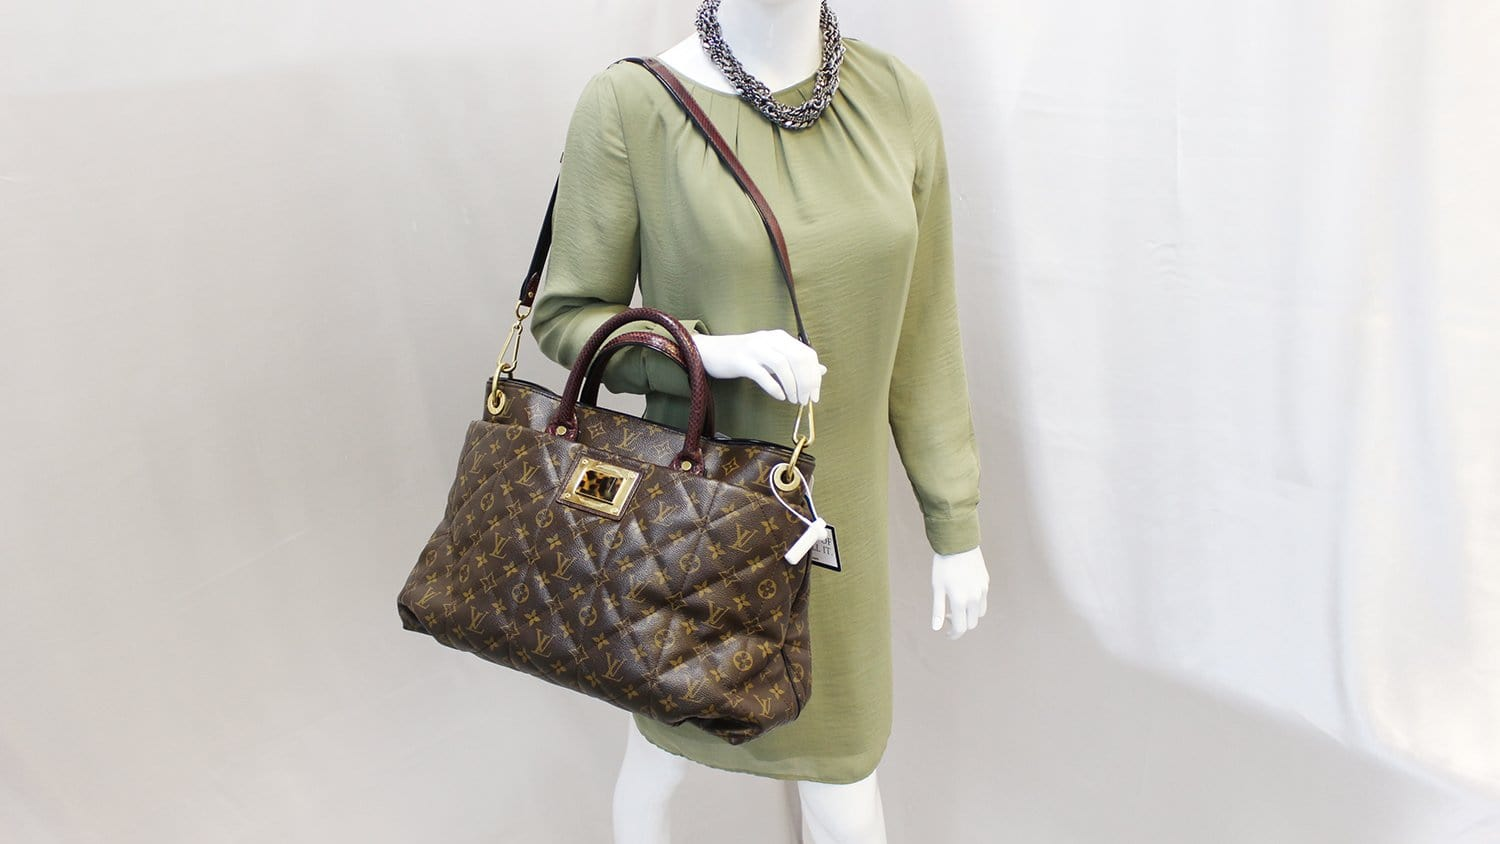 0f7c9ebe0f9e LOUIS VUITTON Monogram Etoile Exotique GM Tote Bag Limited Edition